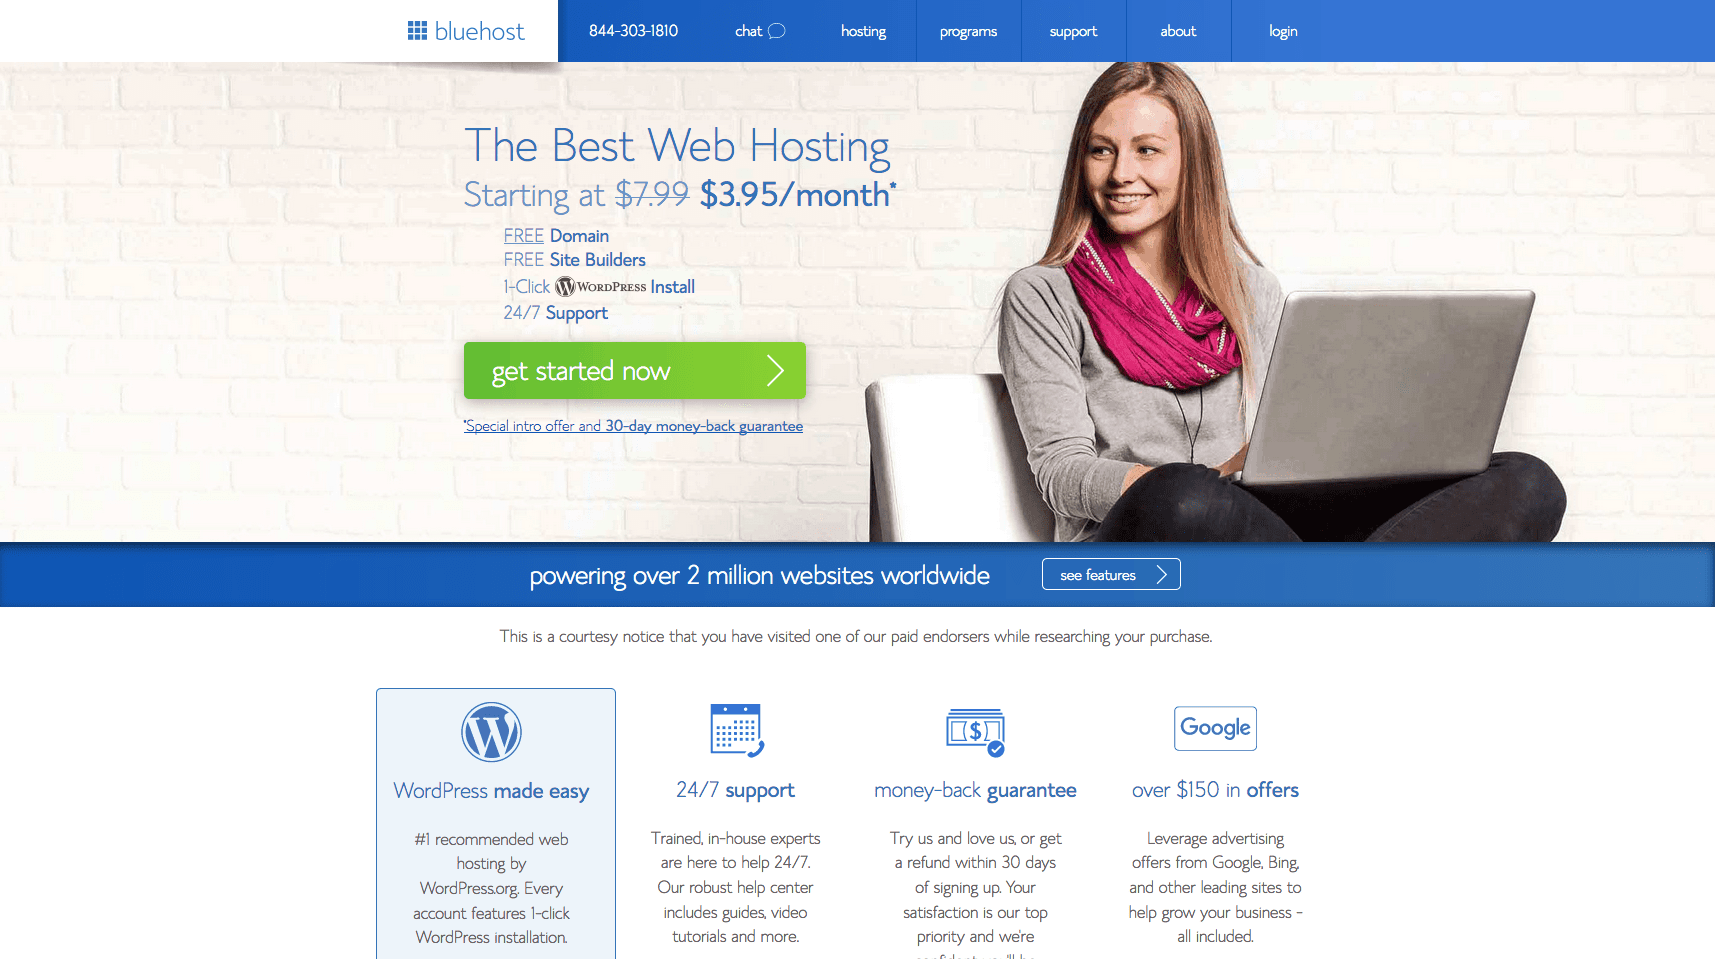 Bluehost.com Homepage Offer